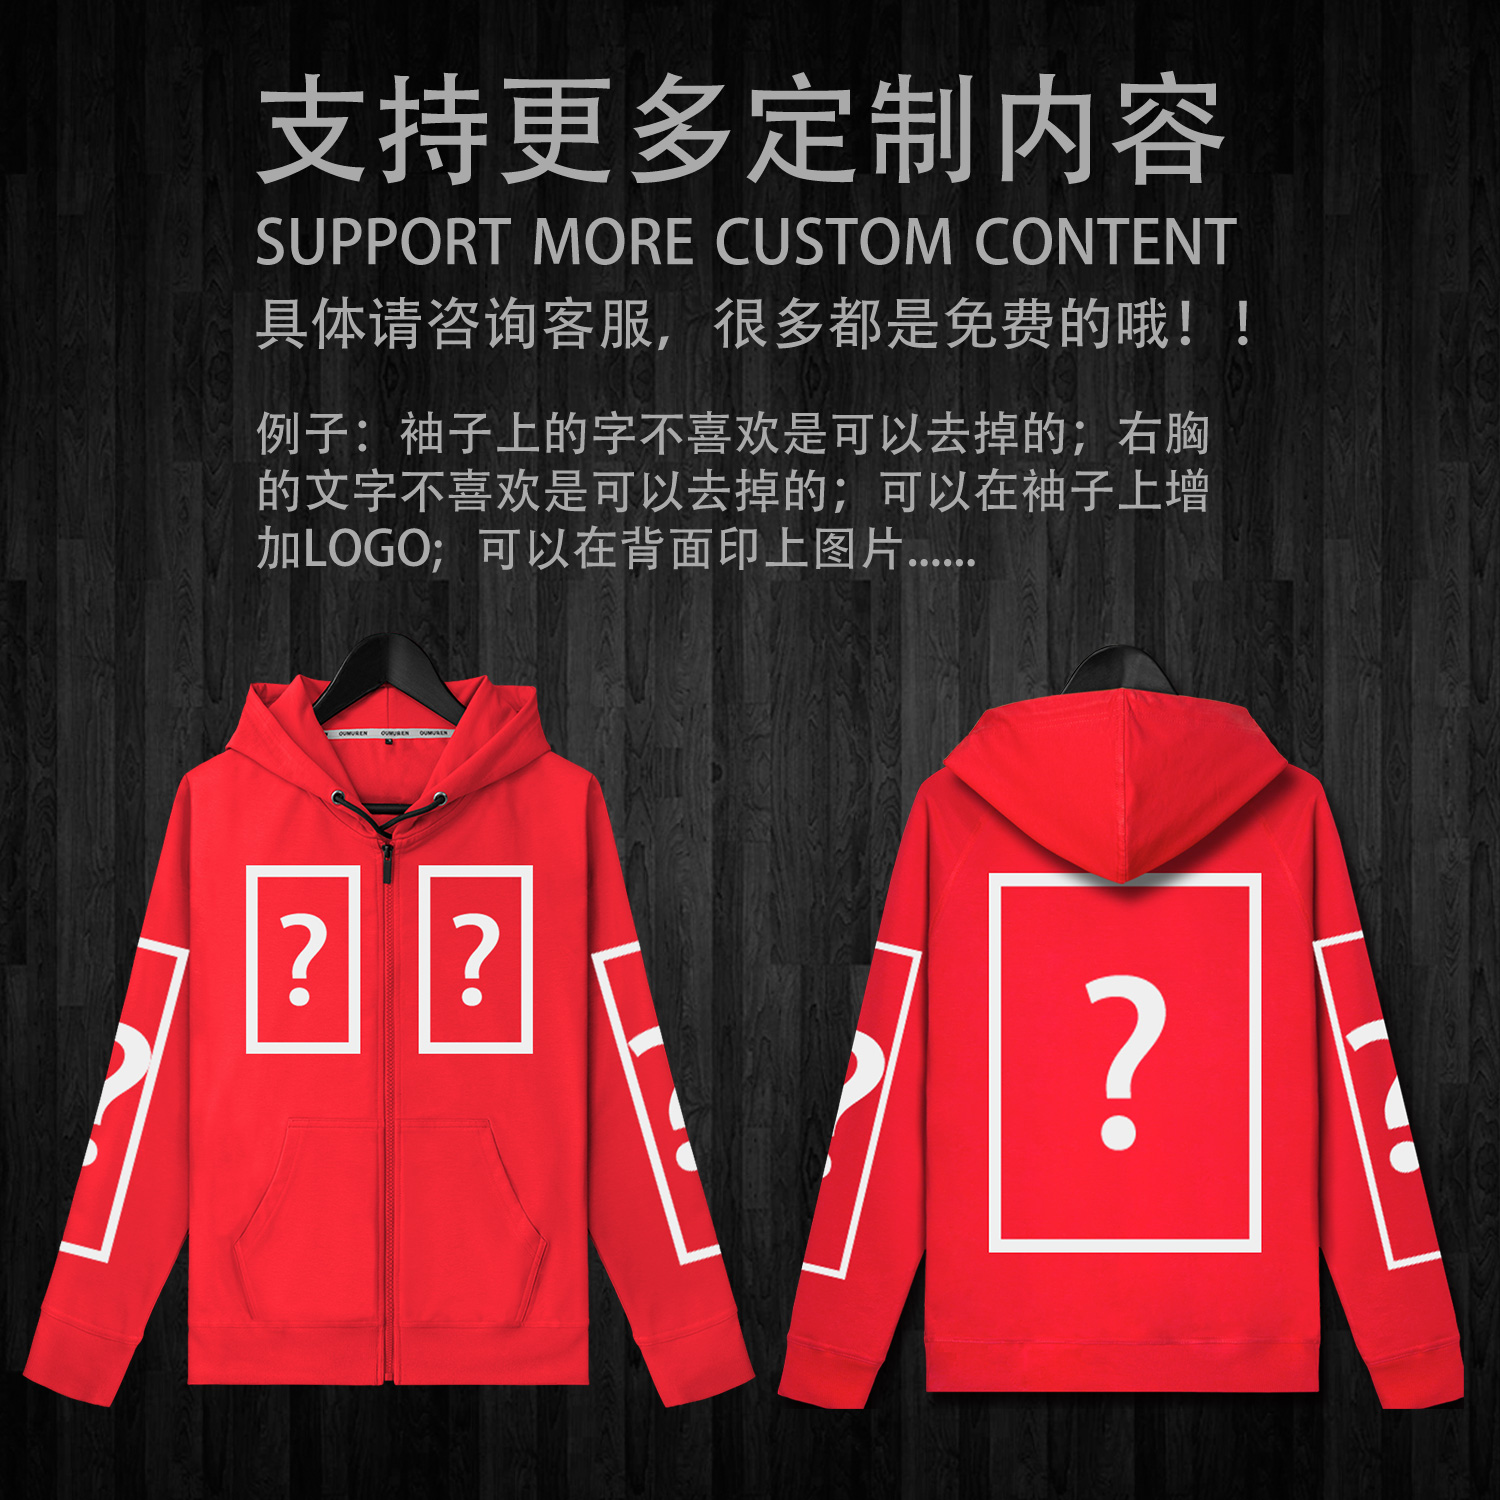 The seven deadly sins seven deadly sins anime clothes suit men and women couples Hooded sweatshirt overalls for men and women